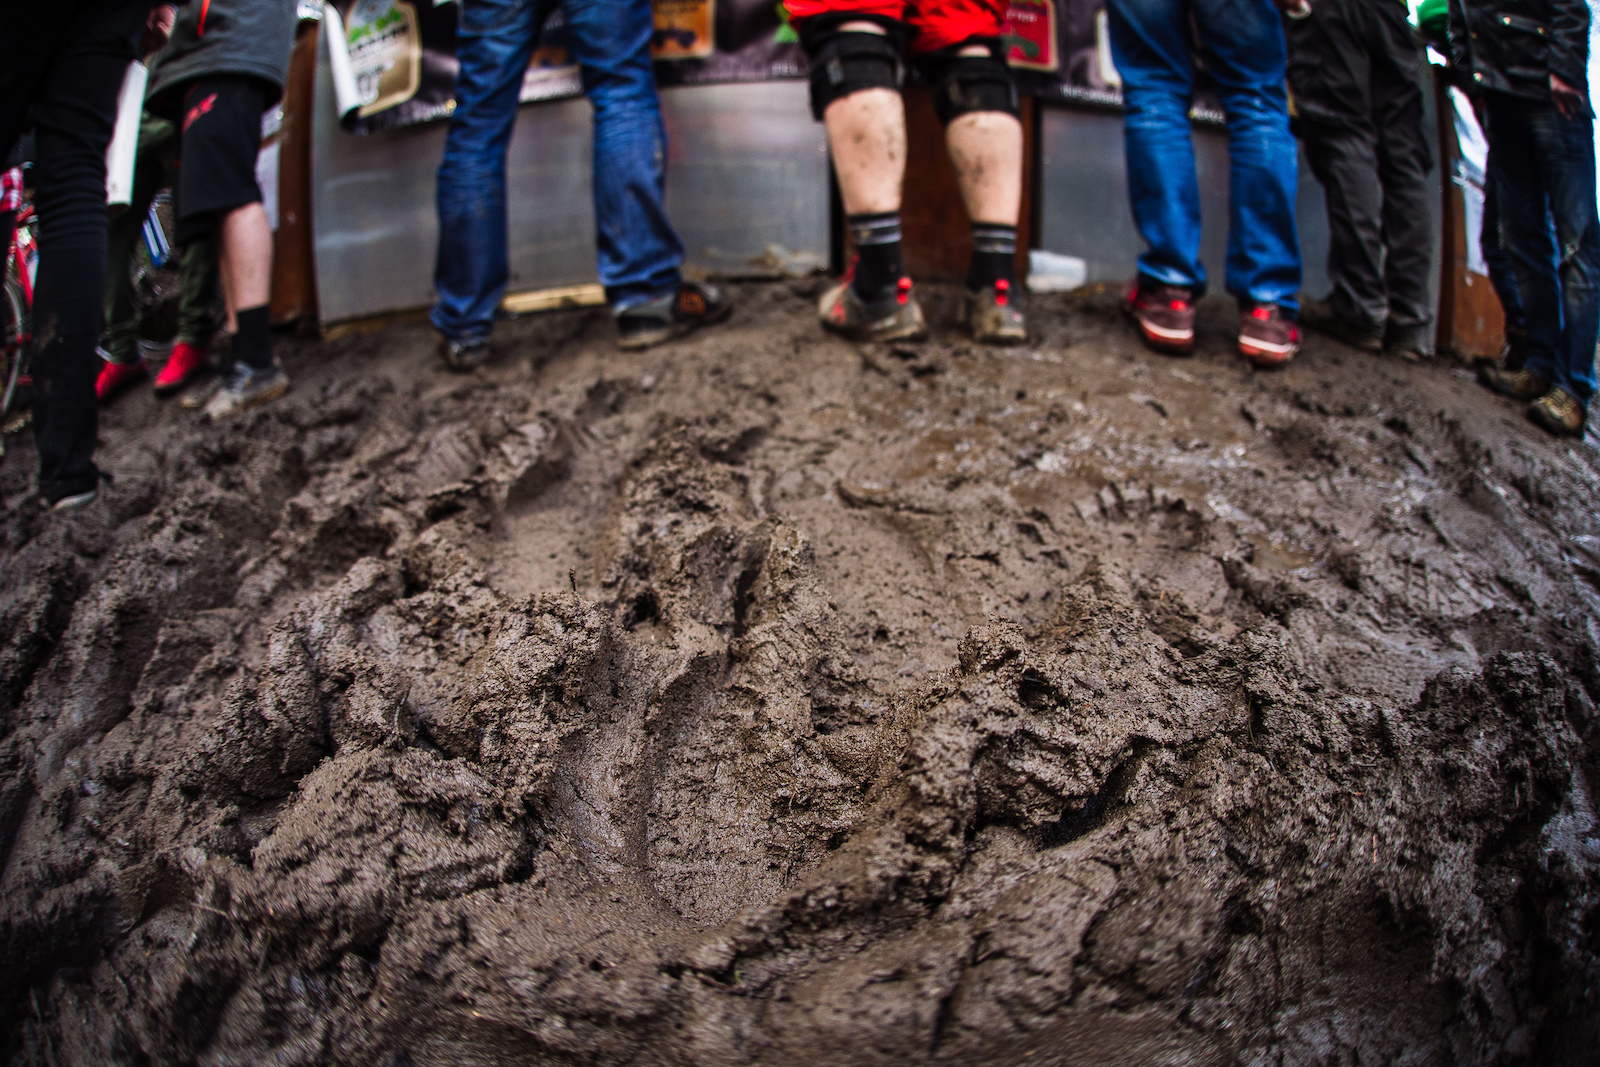 With all the spectators in the bombhole trampling the wet ground into mud queuing for a beer became a slippery affair.